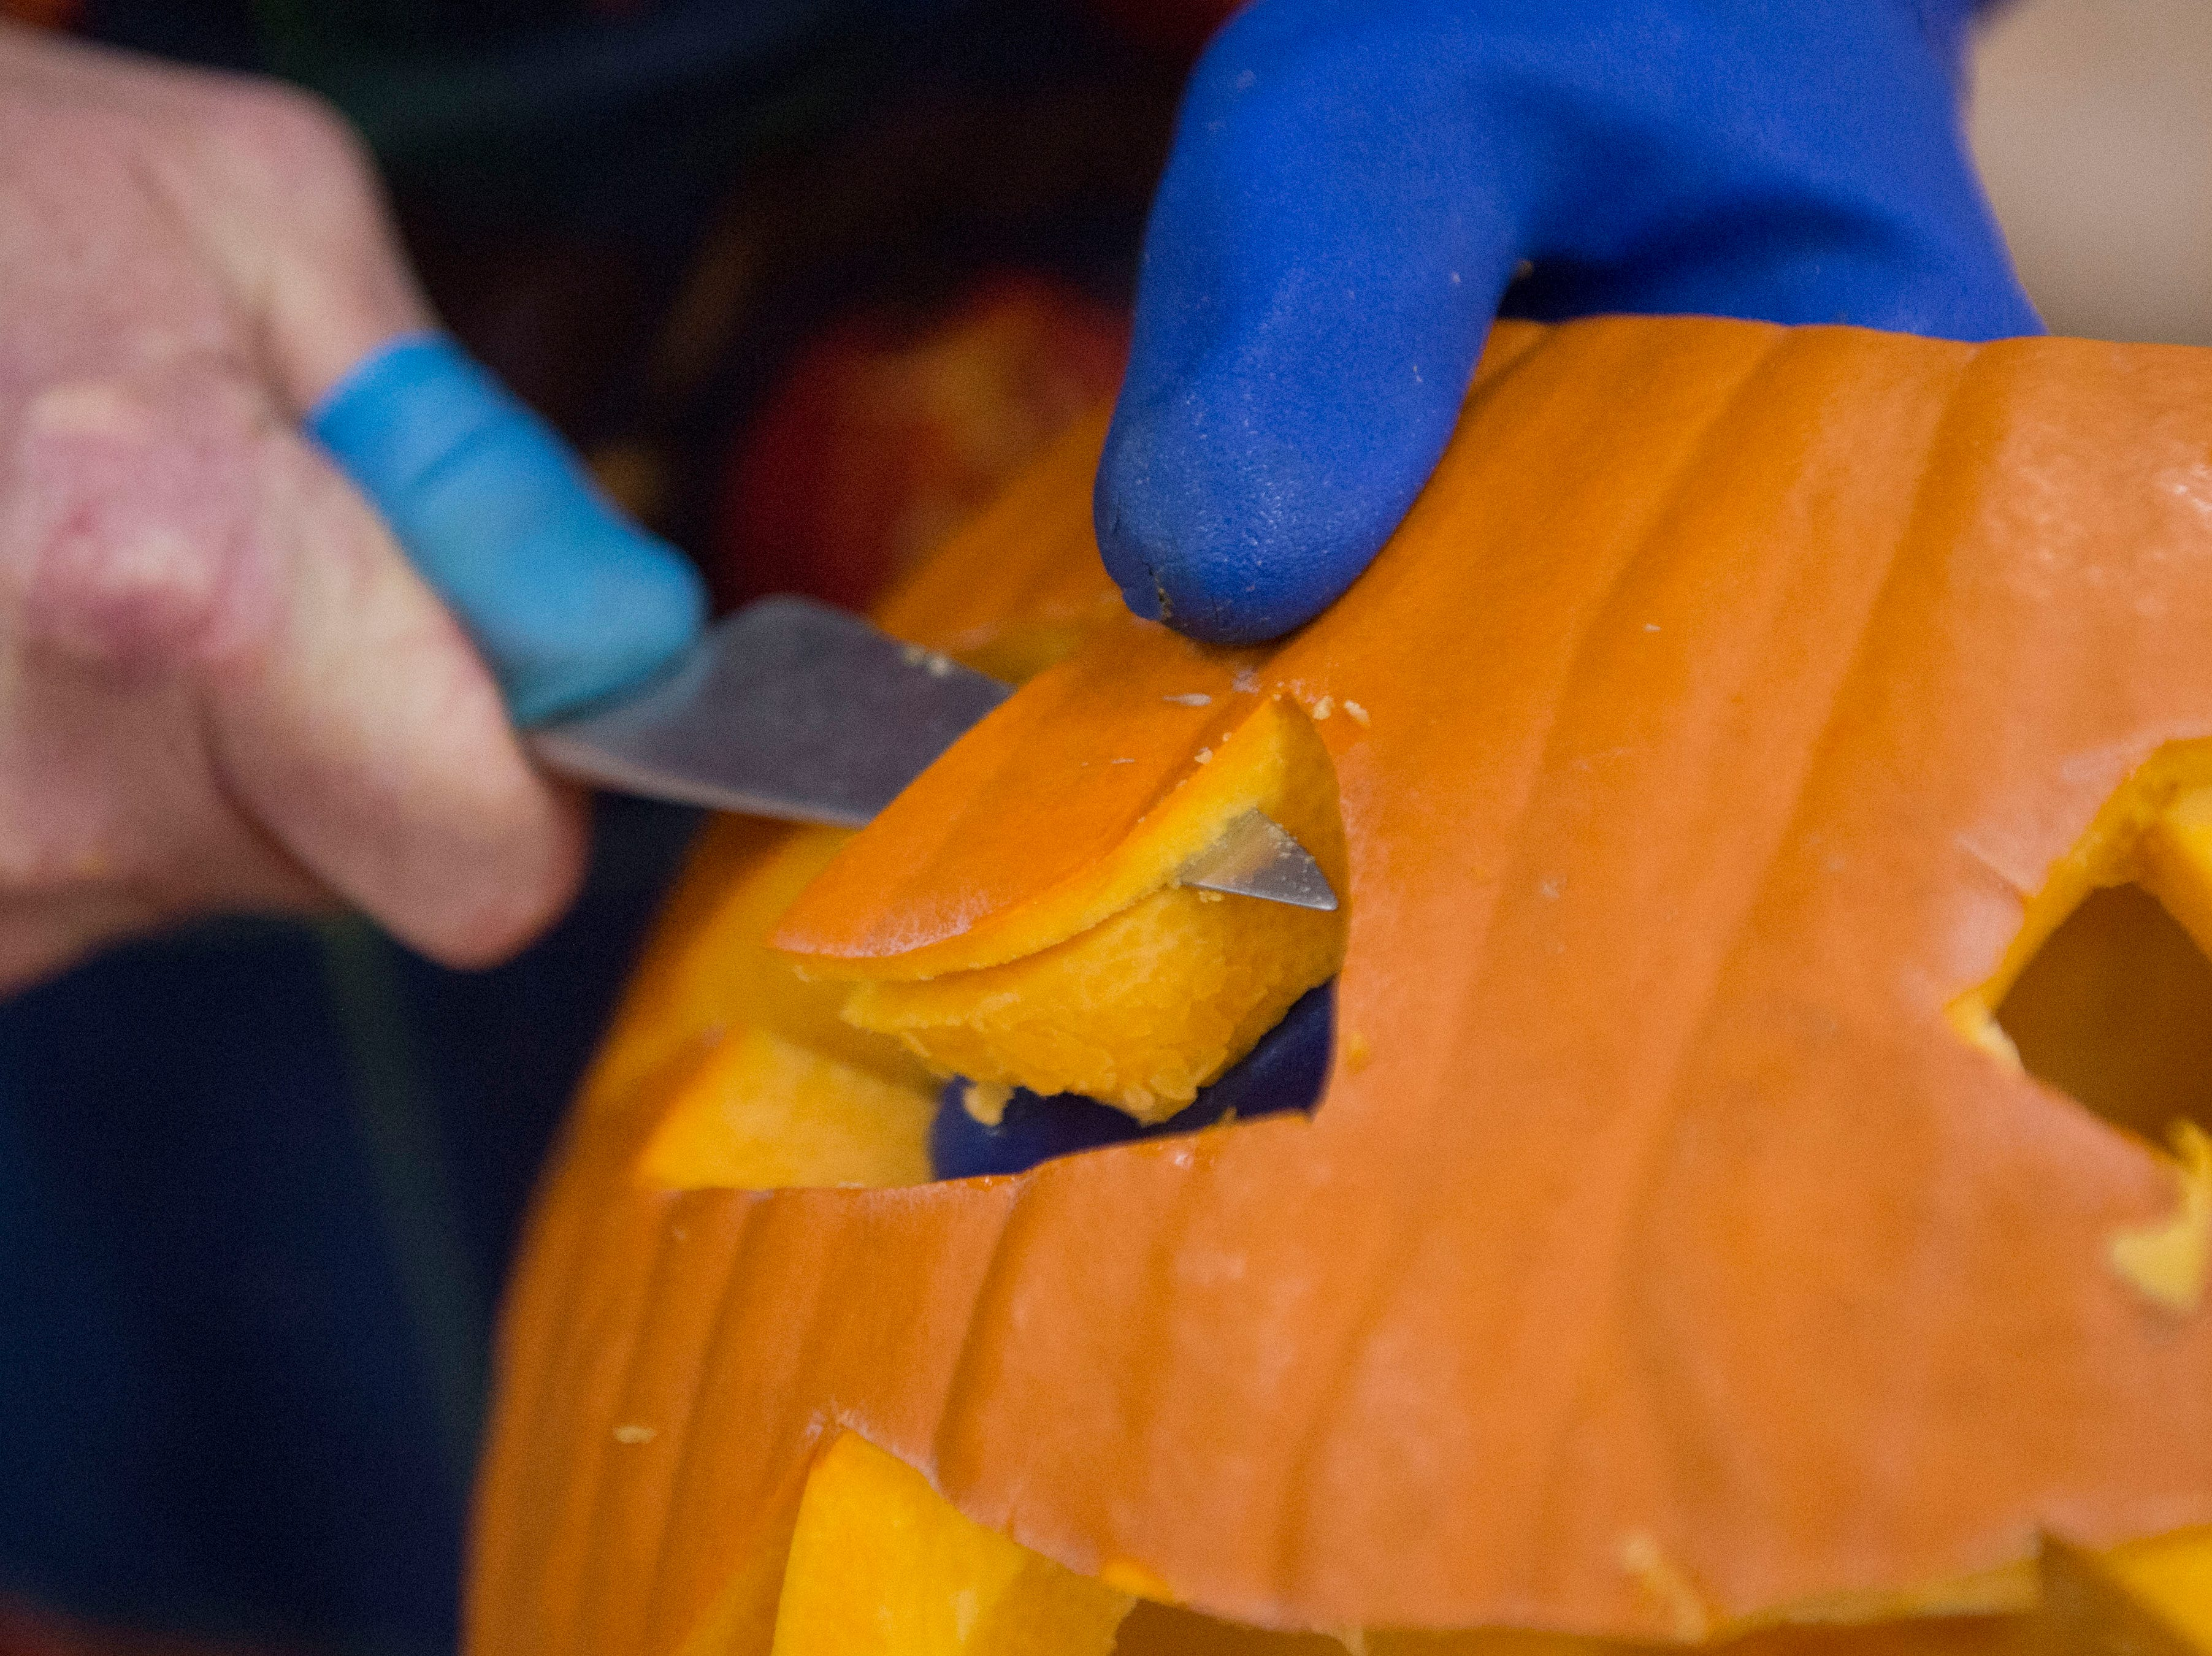 Artist Ken Clayton, also known as Dr. Carvinstein, carves pumpkins at the Fountain City Art Center on Oct. 16, 2018. Clayton has been carving for over 50 years.